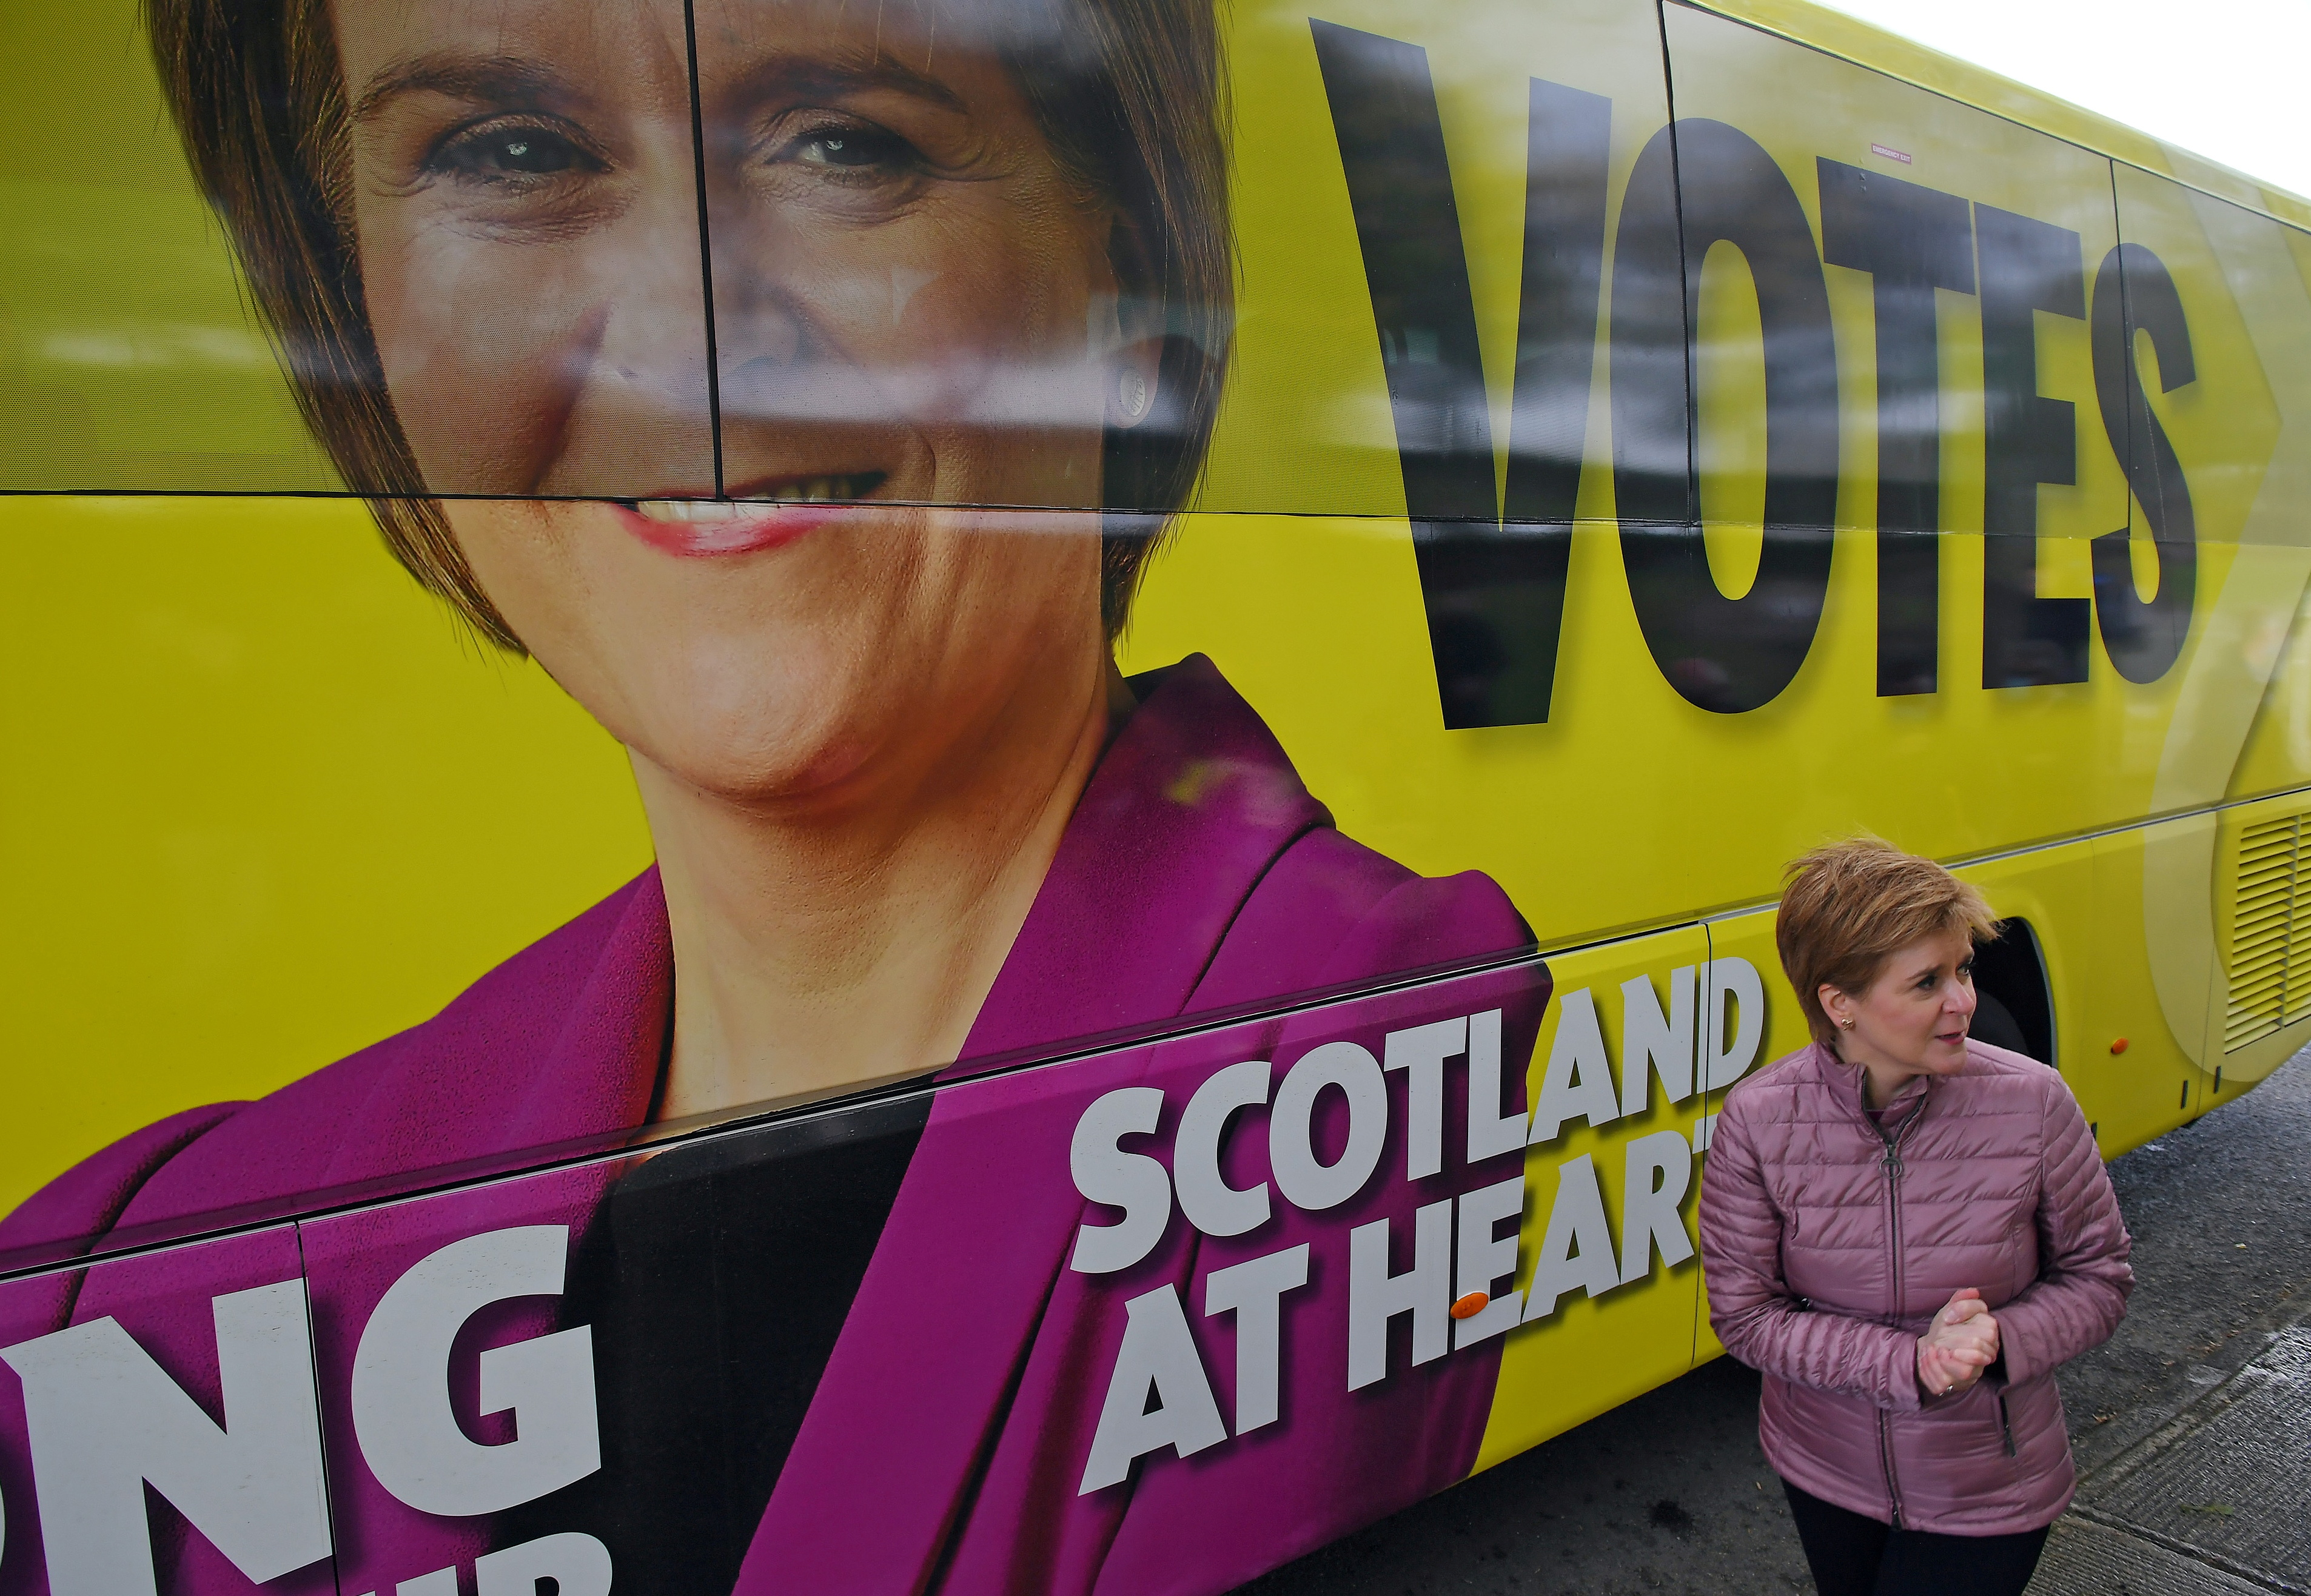 Scotland's First Minister and leader of the Scottish National Party (SNP), Nicola Sturgeon campaigns in Dumbarton, Scotland, Britain May 5, 2021, ahead of the upcoming Scottish Parliament election. Andy Buchanan/Pool via REUTERS